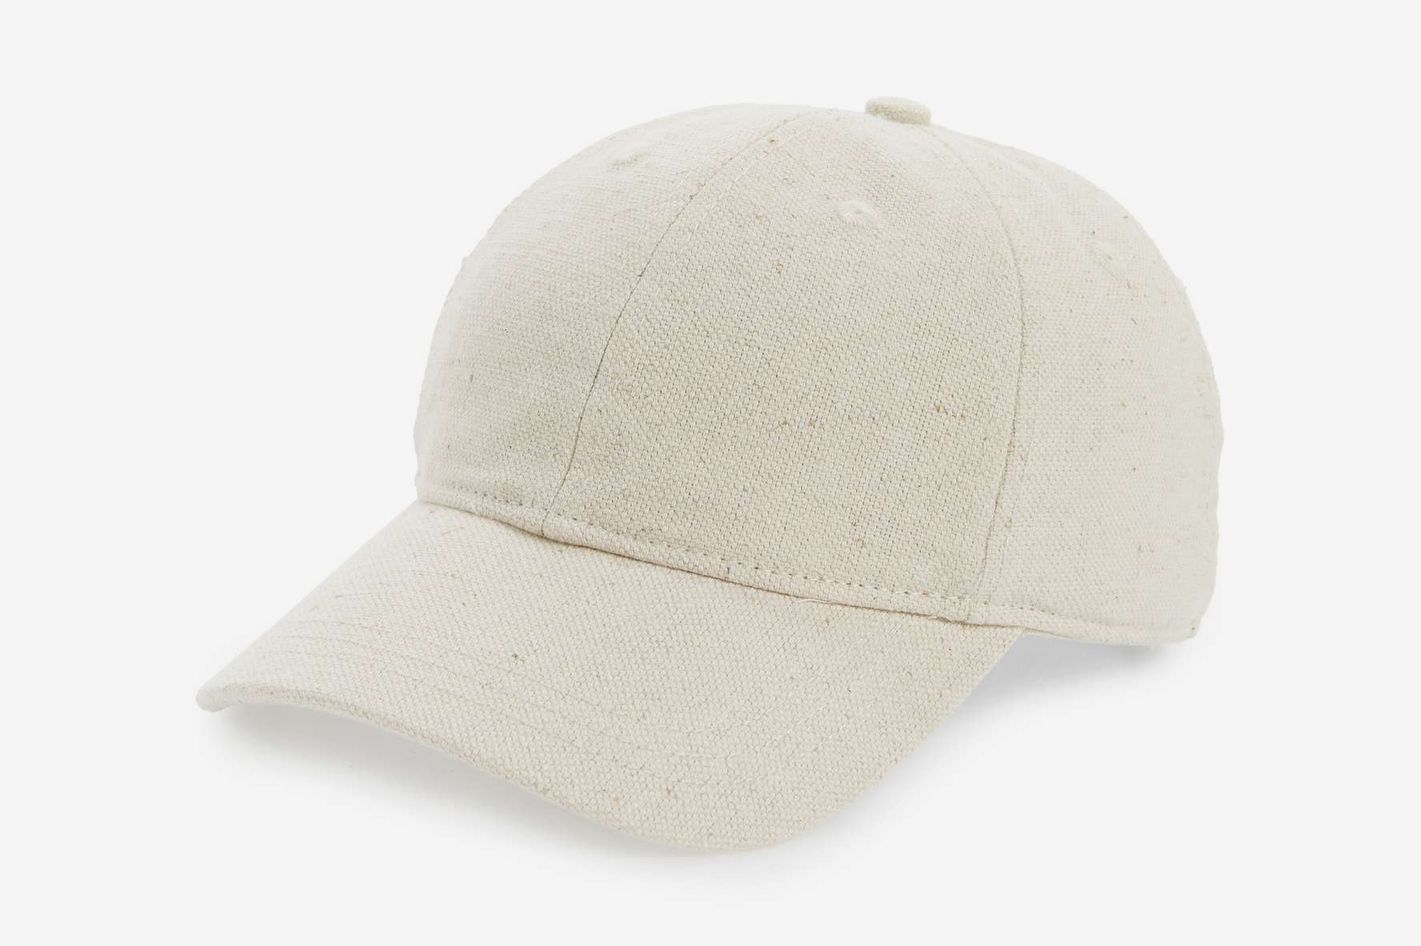 127e6b0a75a Cotton   Linen Baseball Cap